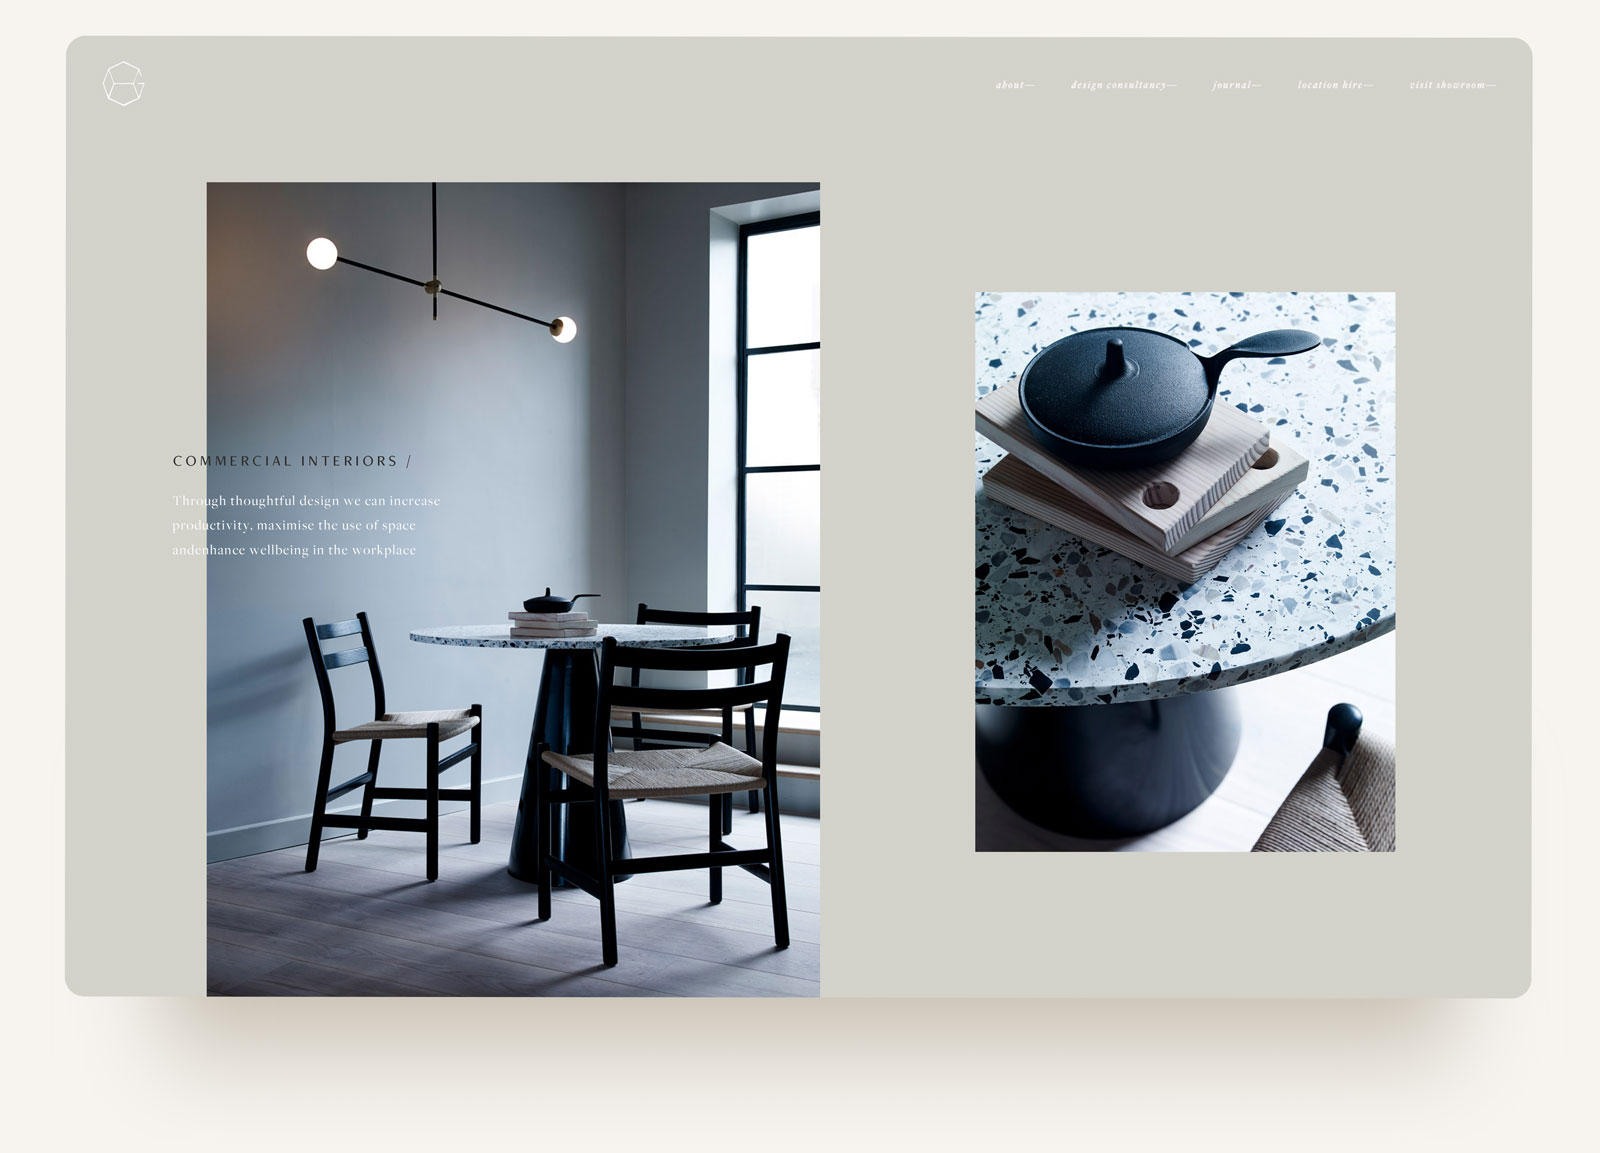 House of Grey commercial interiors studio editorial layout portfolio. Squarespace website design and custom code by Brittany Hurdle beckon webeckon